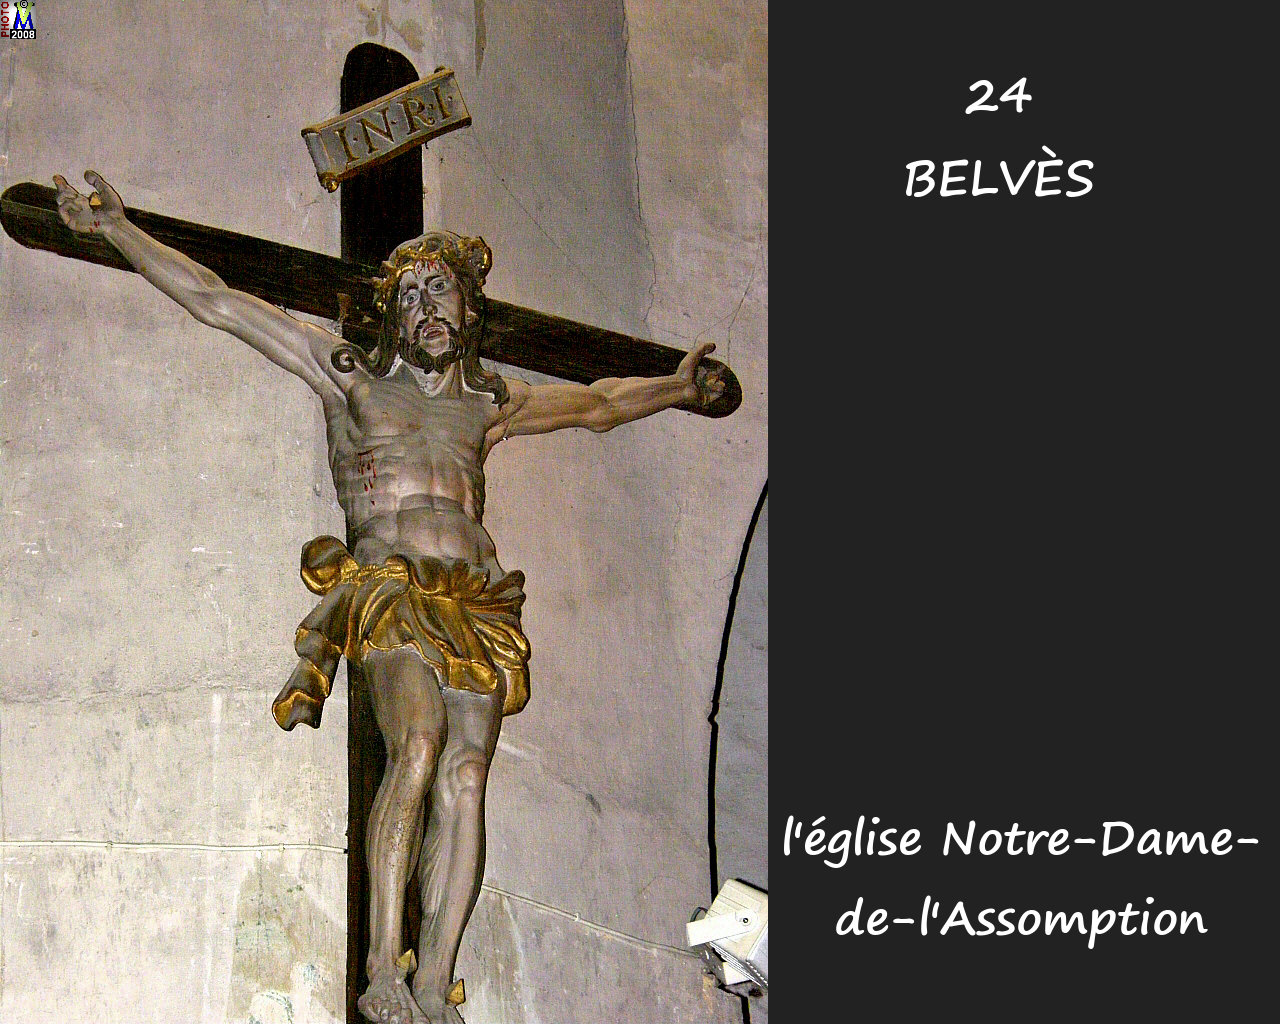 24BELVES_eglise_232.jpg